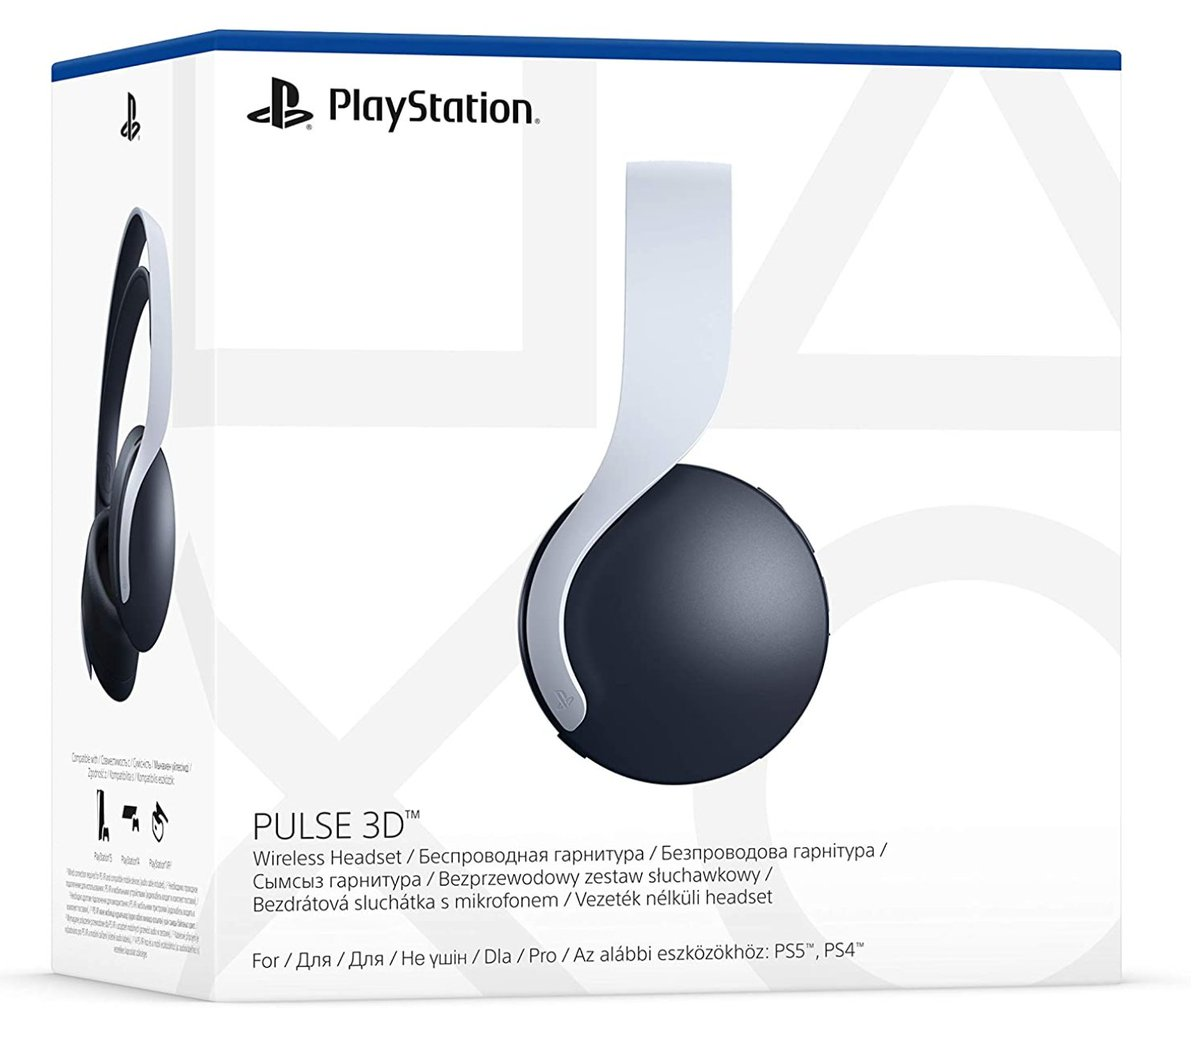 Back in stock  Sony Pulse 3D Headset PS5 $99.00 Amazon 2